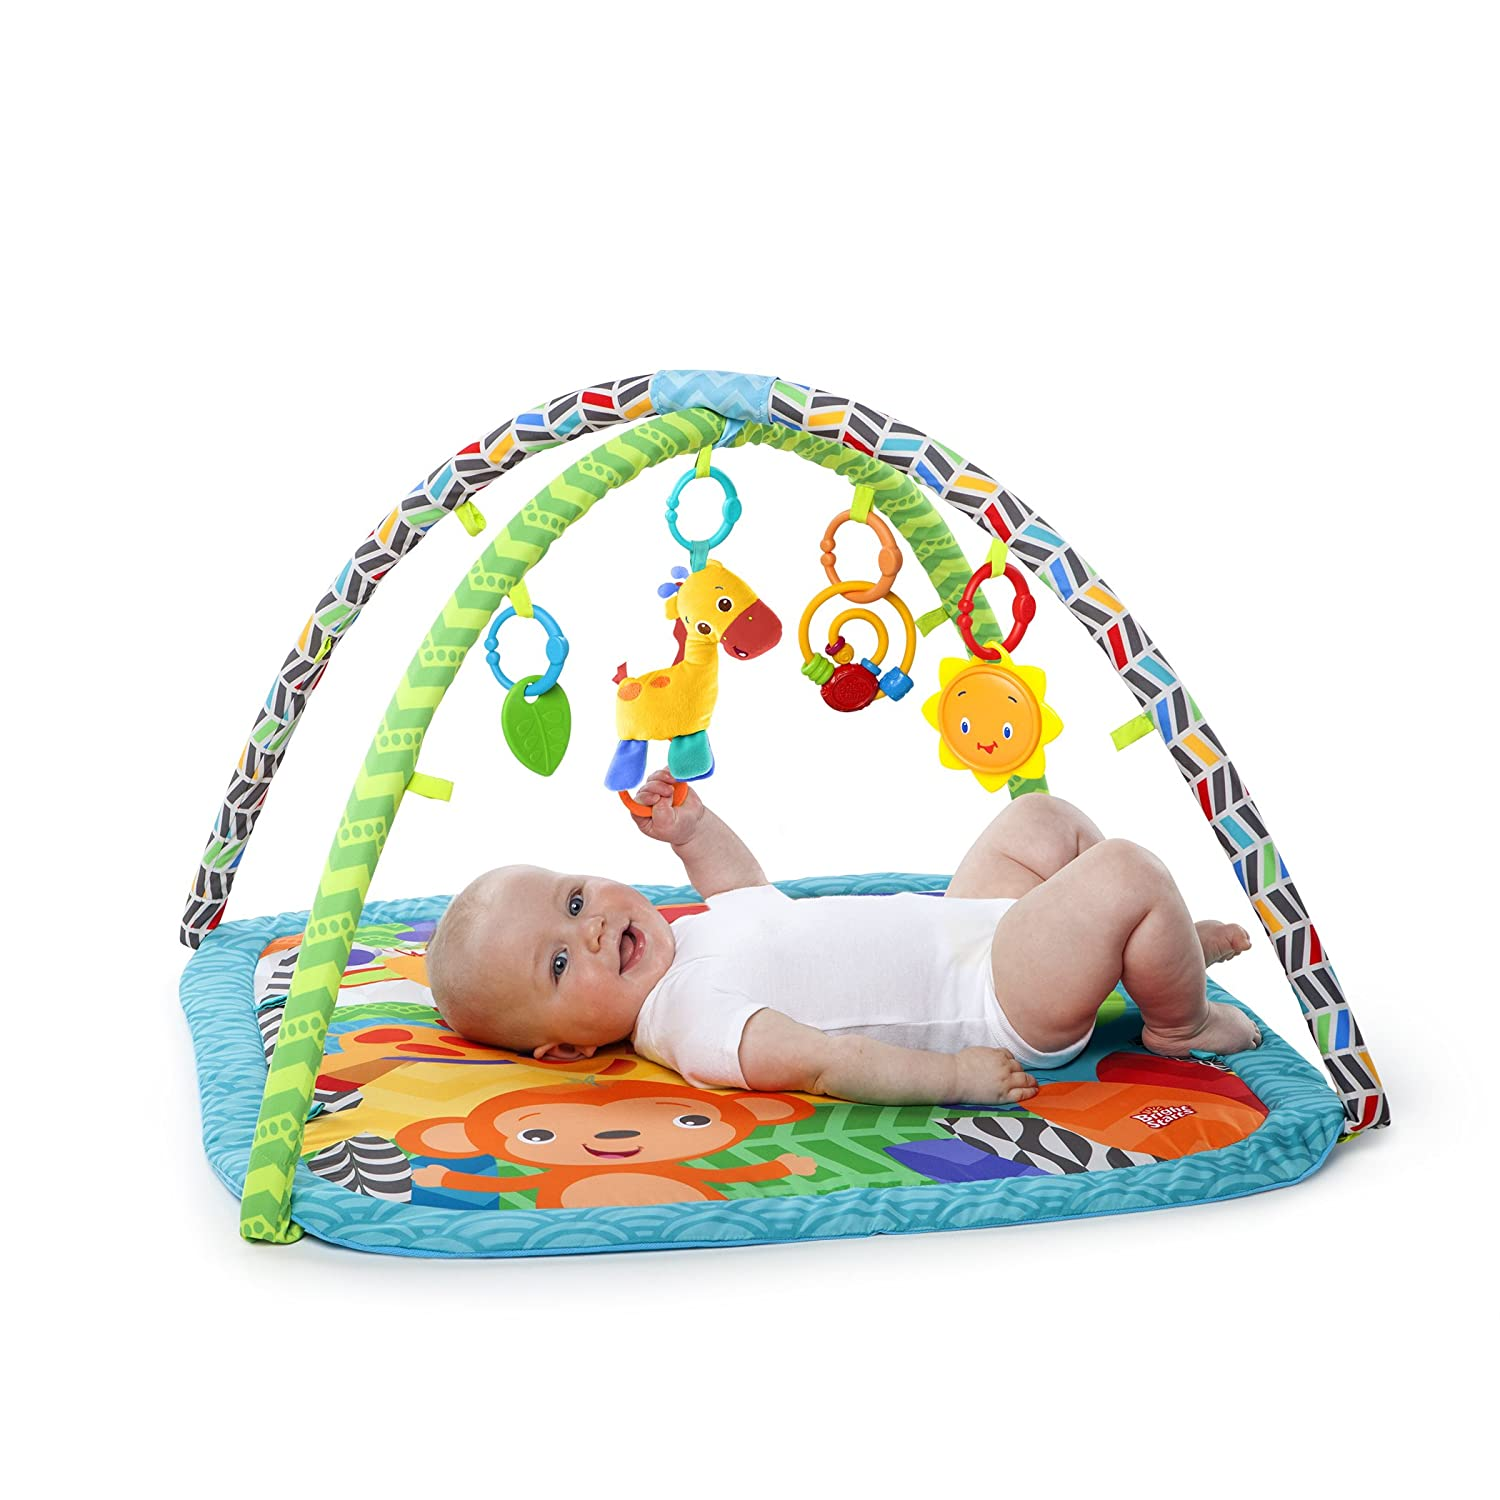 floor foam gym even enjoy and will floors it play absolutely kids this baby with portable in love your there but why mat playmat more product many fall are you immensely reasons